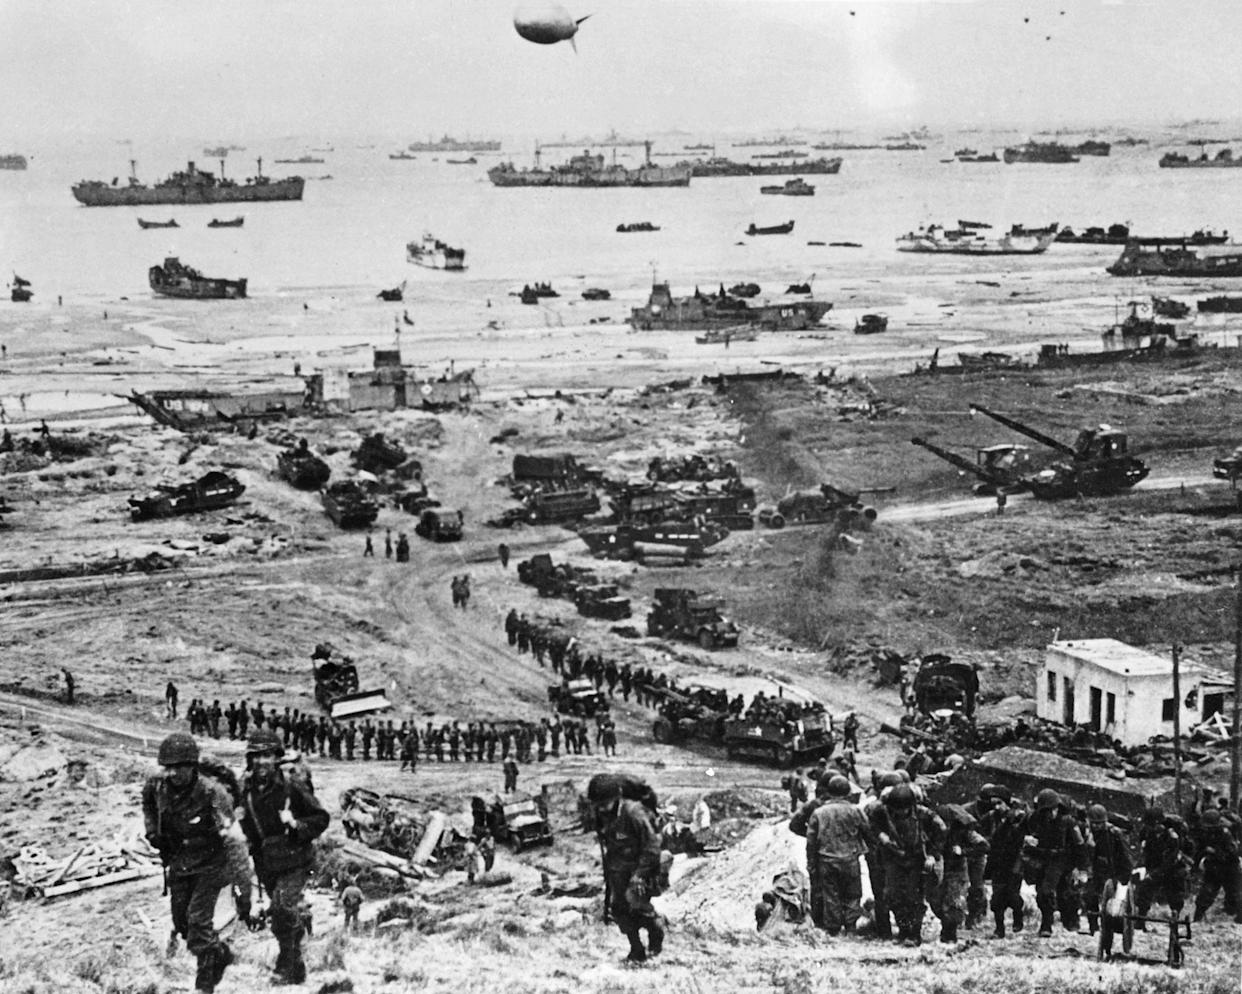 This file photograph taken on June 6, 1944, shows Allied forces soldiers during the D-Day landing operations in Normandy, north-western France.